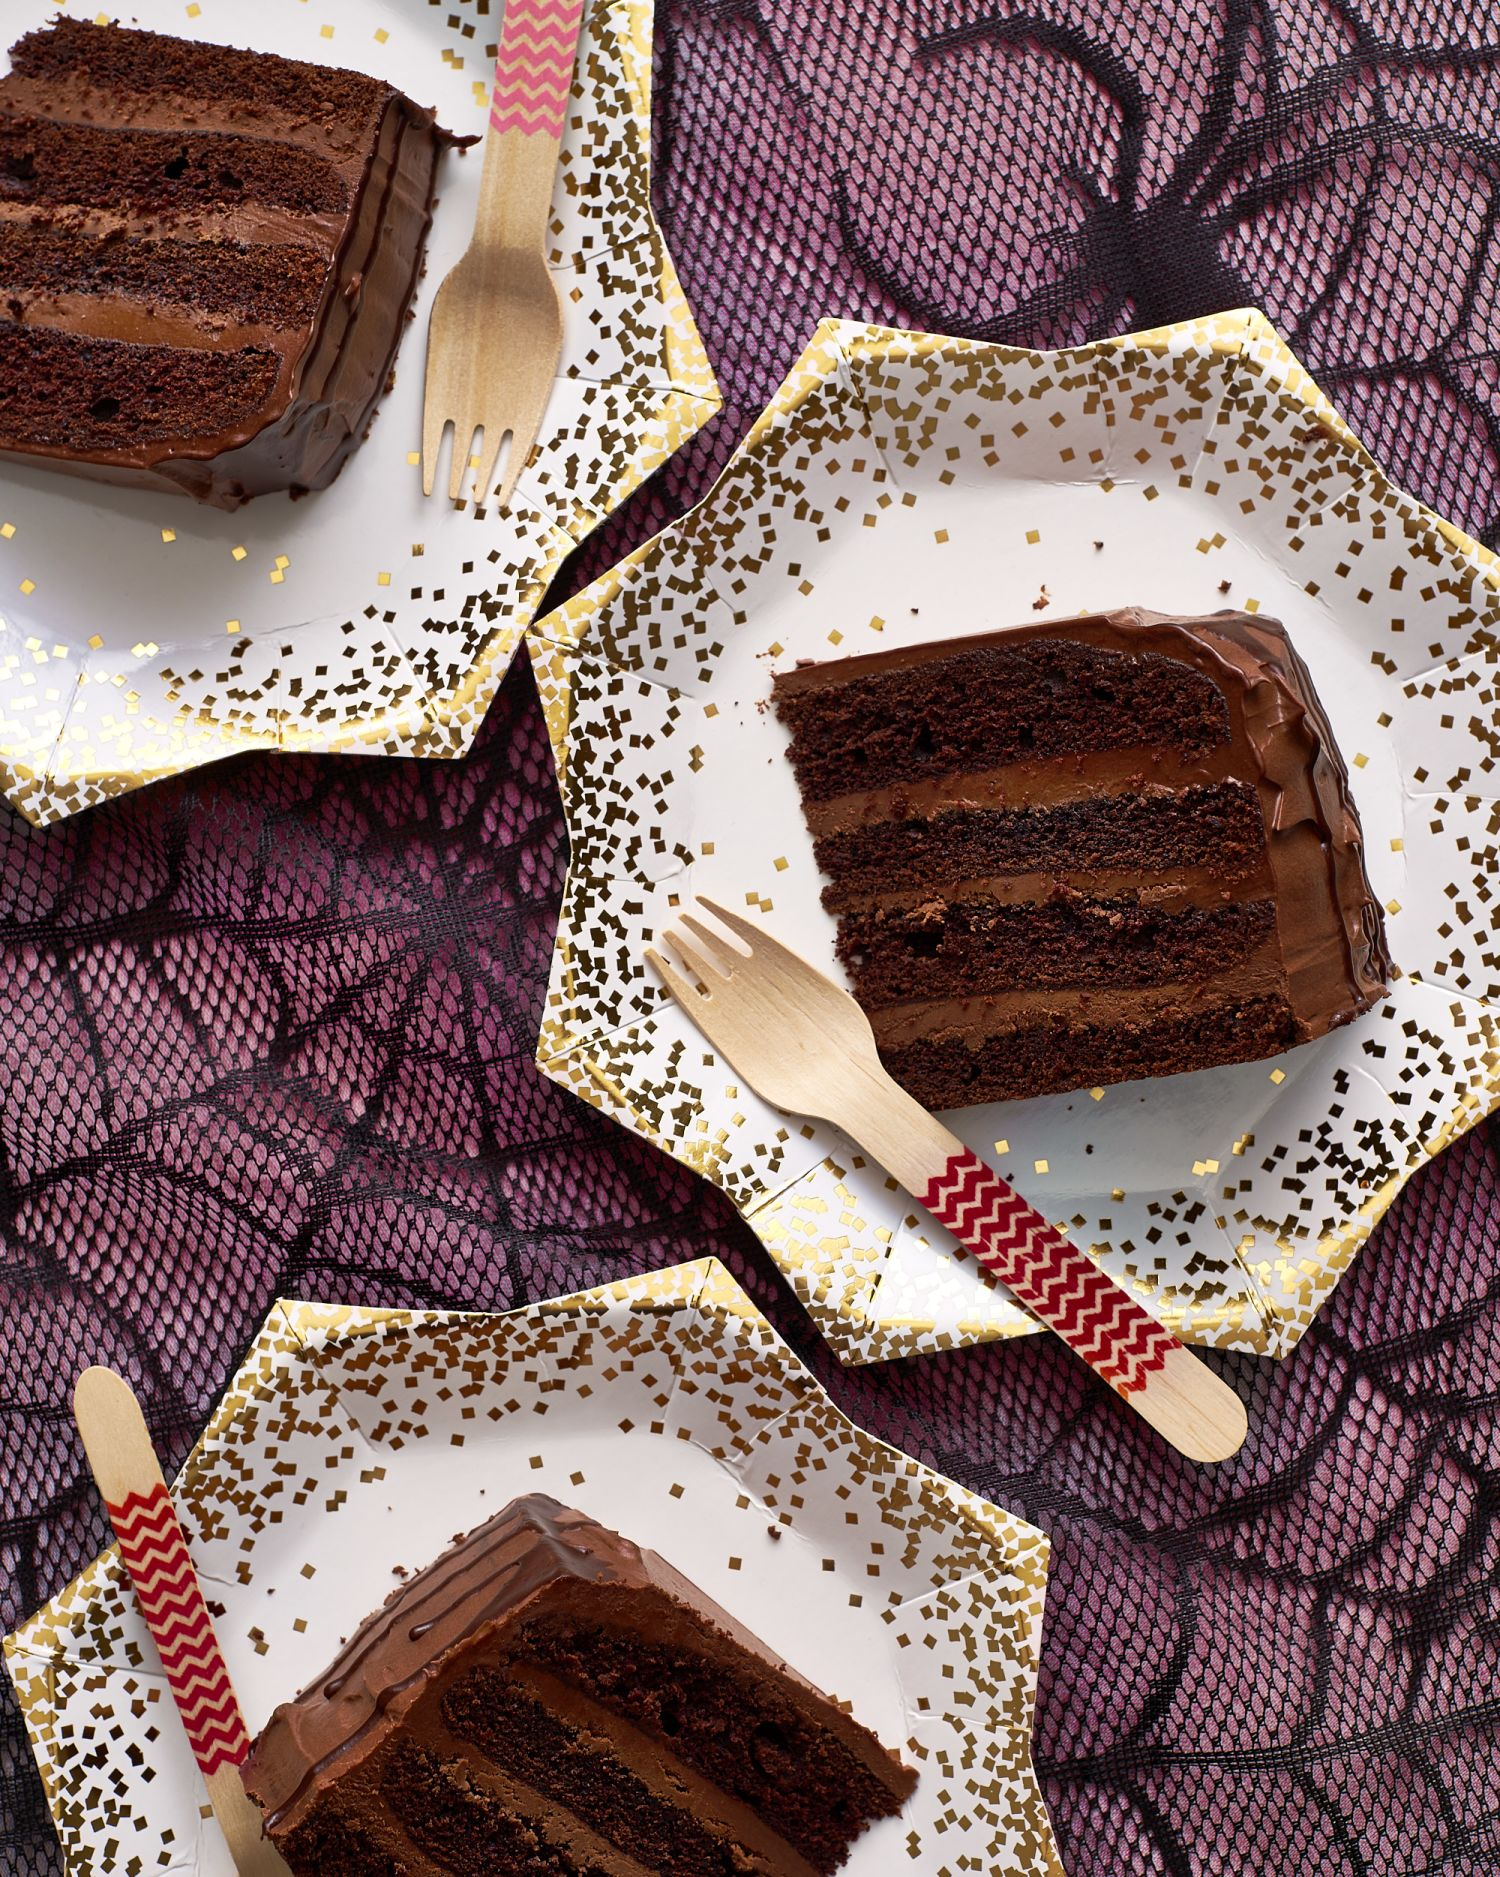 This Dark Chocolate Cake Contains All Our Best Baking Tricks